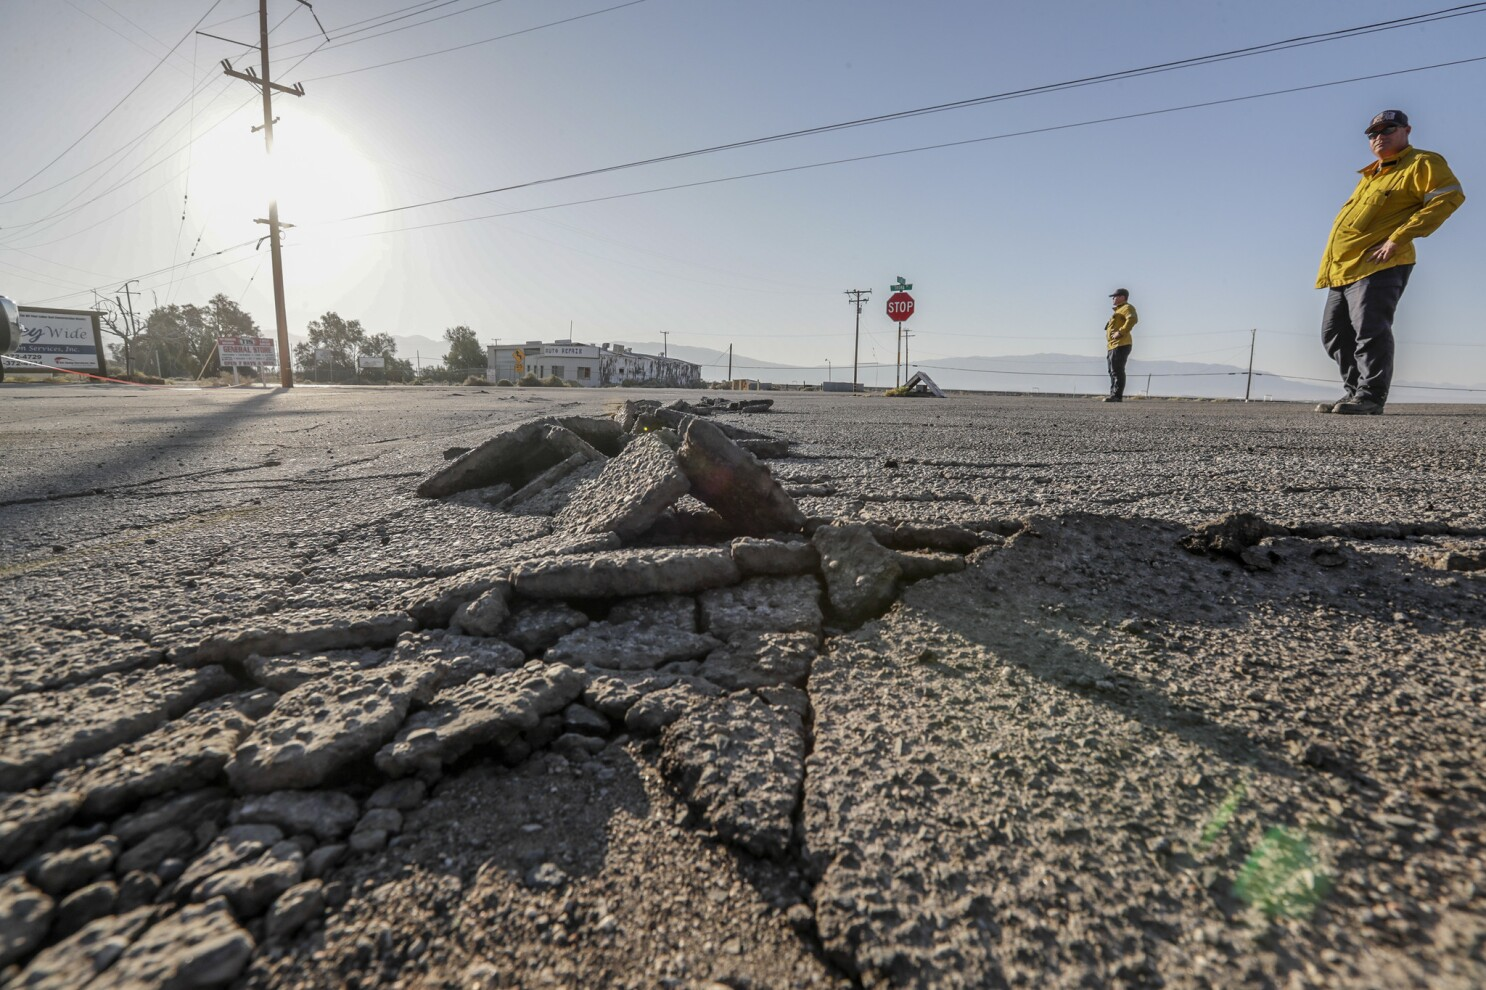 Unprecedented Movement Detected On California Earthquake Fault Capable Of 8 0 Temblor Los Angeles Times